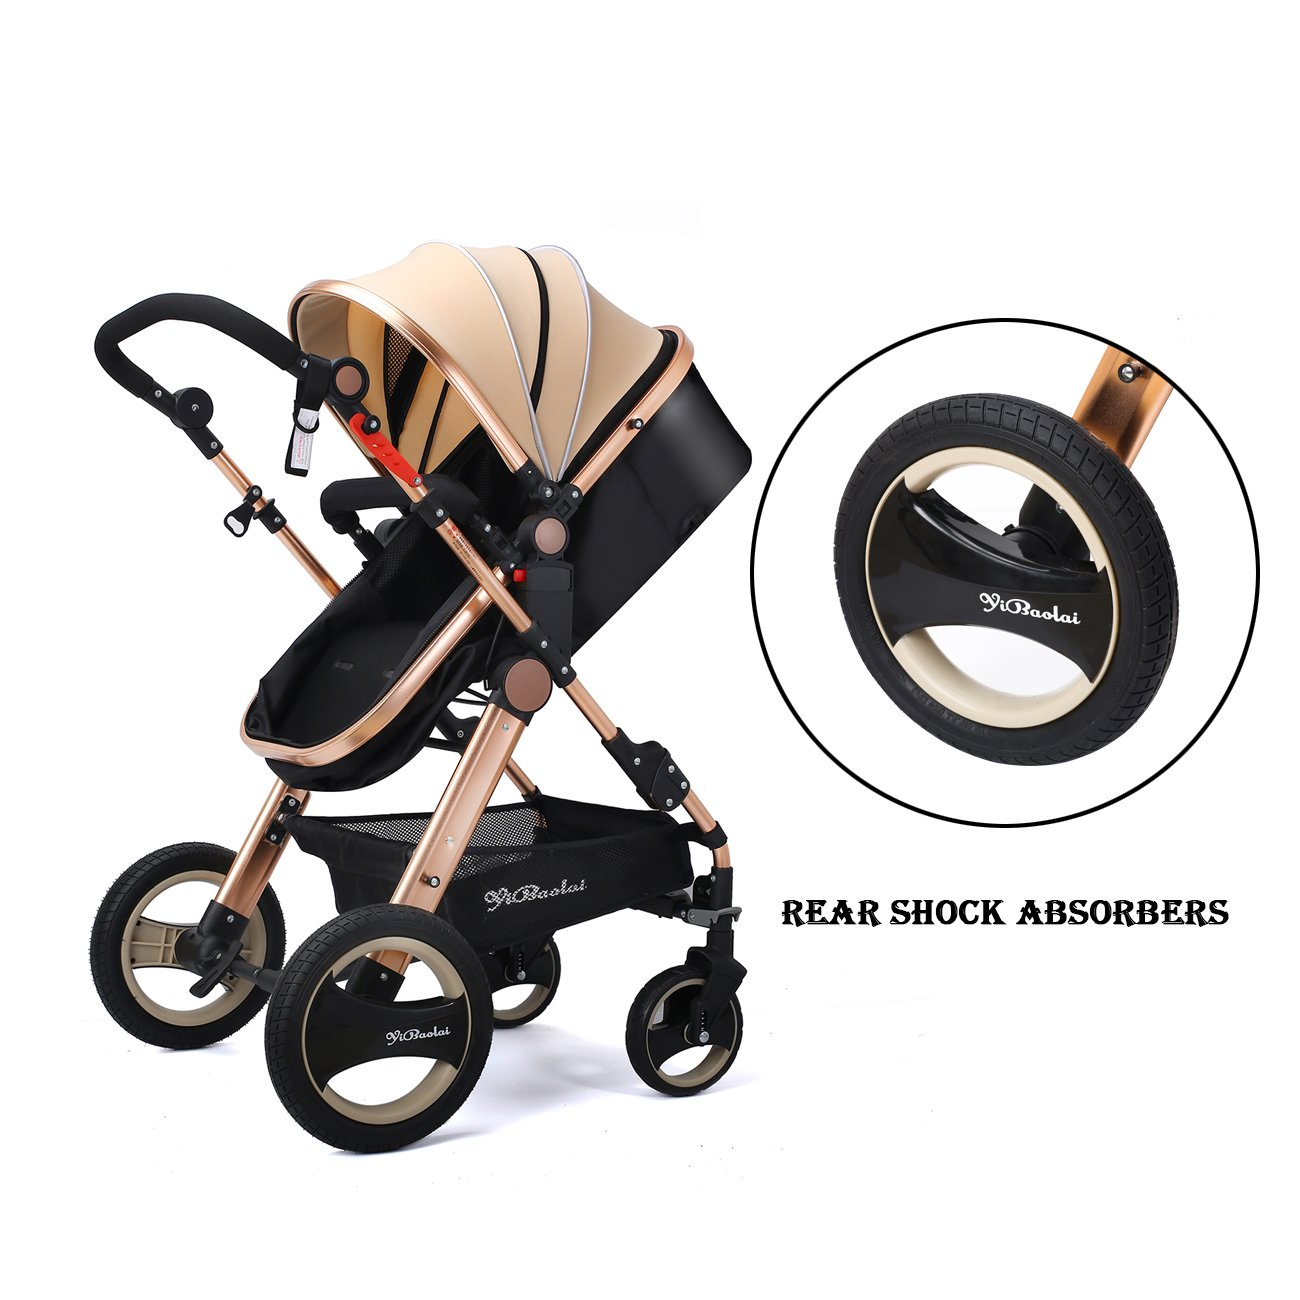 YBL Newborn Infant Baby Stroller and Toddler Folding Convertible Kids Doll Carriage Rubber Four Wheels Luxury High View Anti-Shock Pram